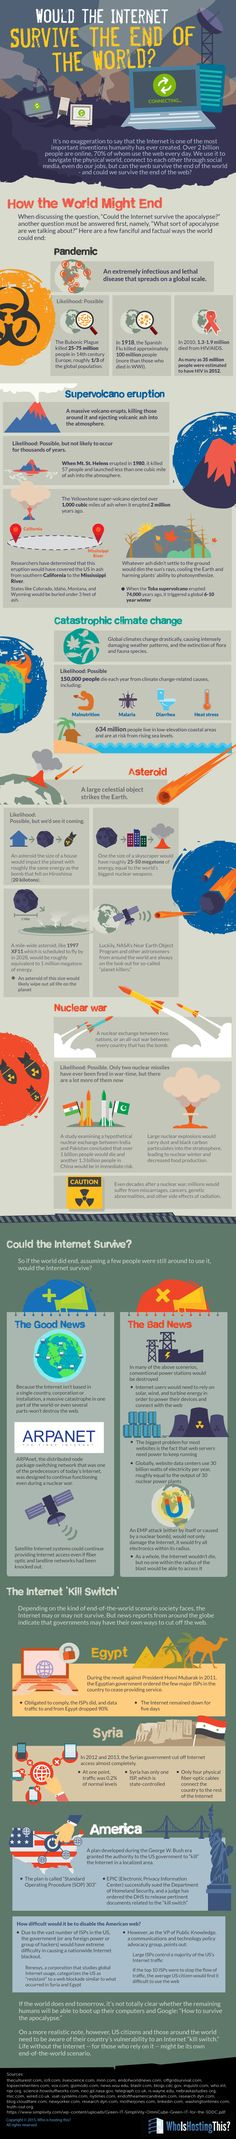 Would the Internet Survive the End of the World? #infographic #Technology #Internet